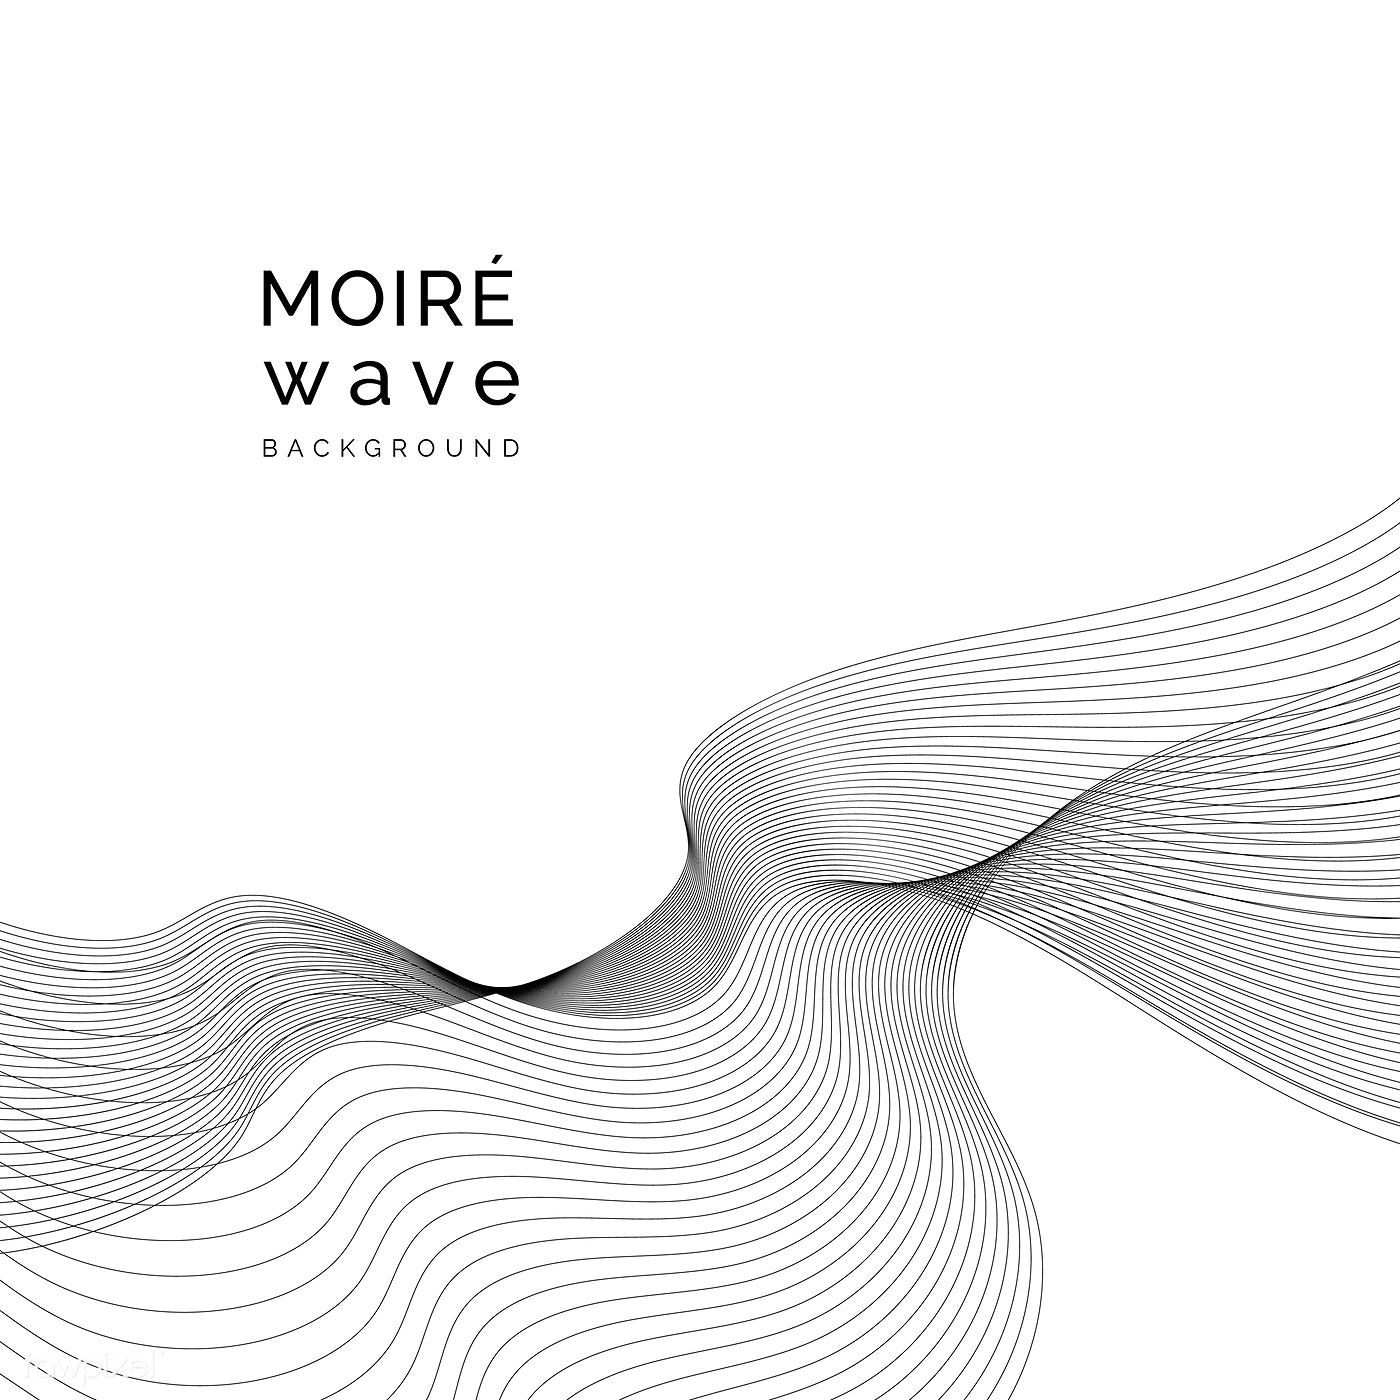 Black Moire Wave On White Background Free Image By Rawpixel Com